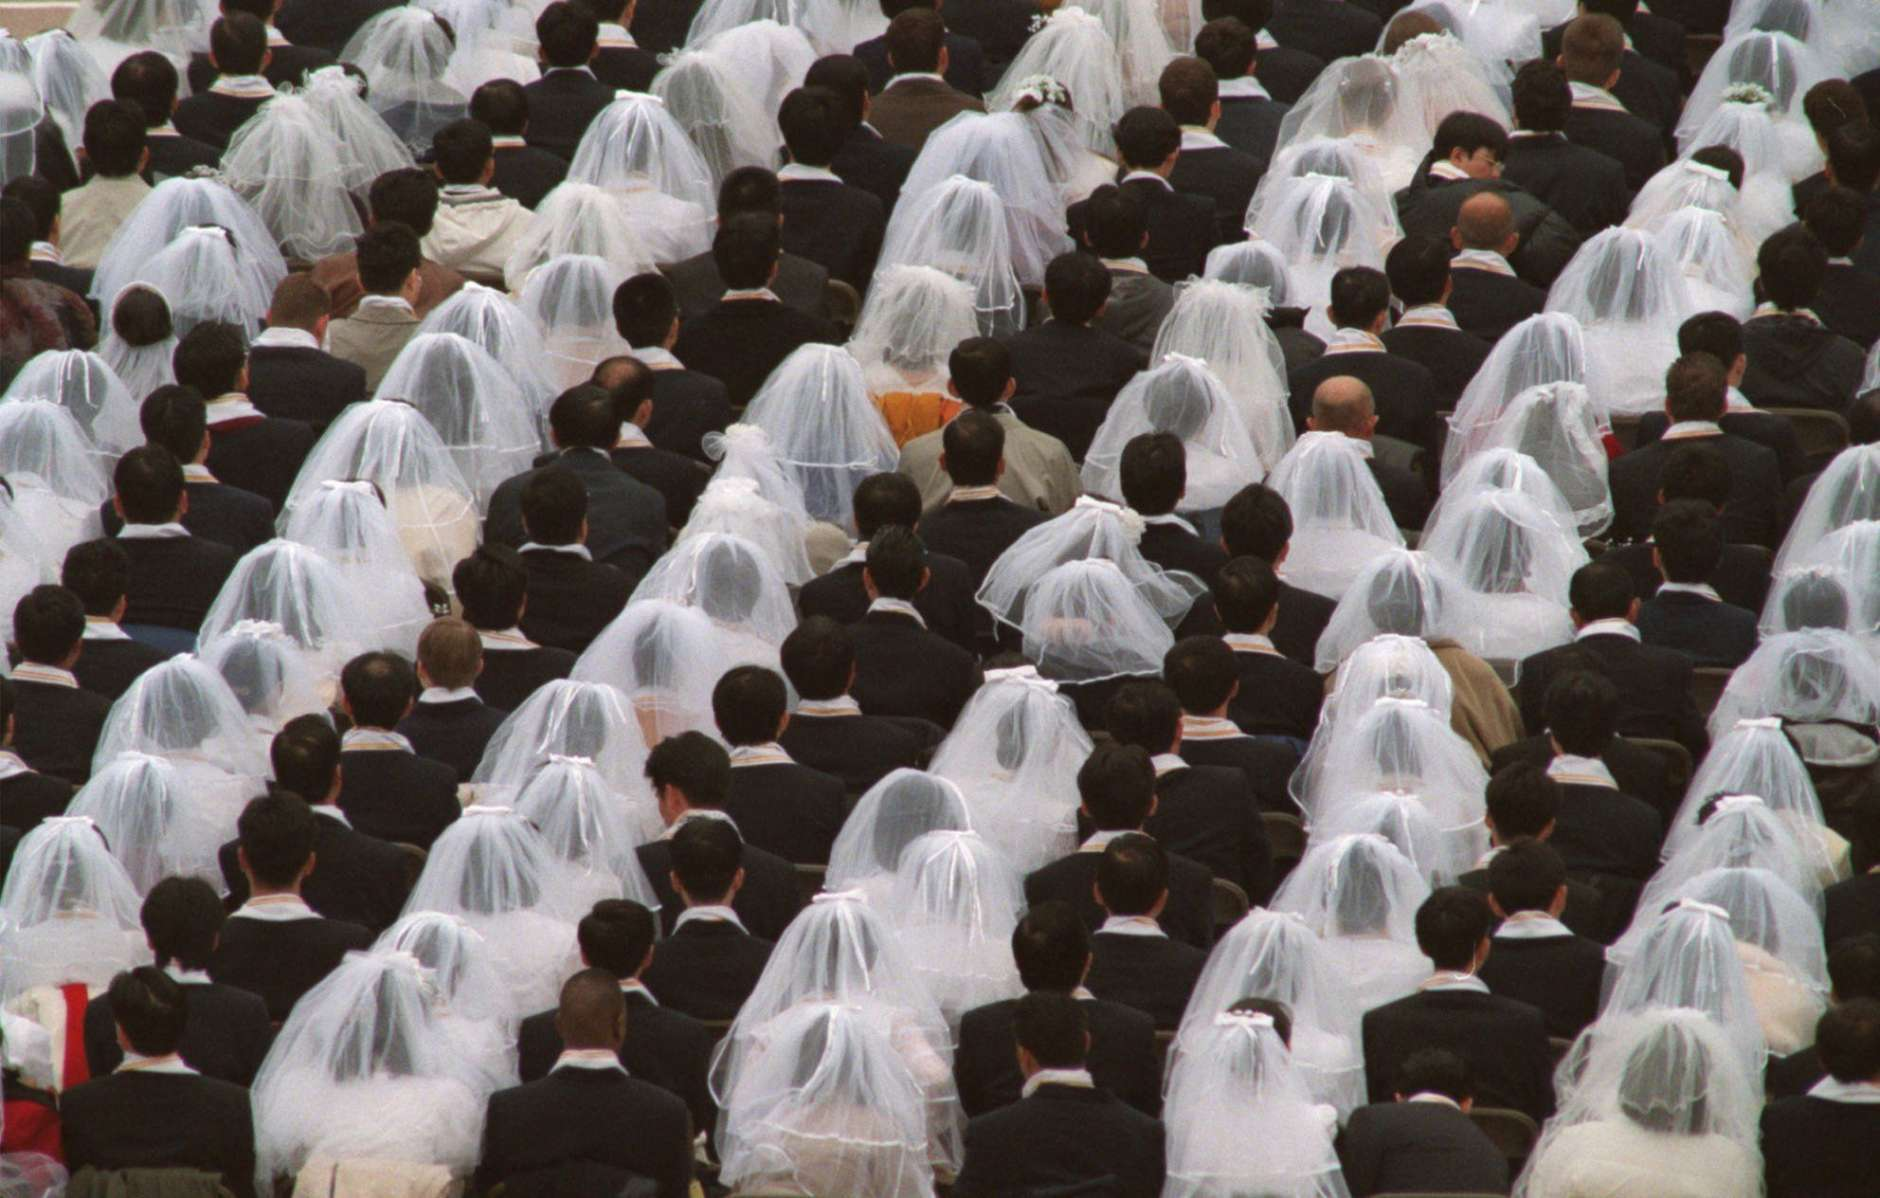 Some of the 28,000 couples participate in a marriage affirmation ceremony officiated by the Rev. and Mrs. Sun Myung Moon, founders of the Unification Church, at RFK Stadium, Saturday, Nov. 29, 1997, in Washington. D.C. (AP Photo/Ken Cedeno)